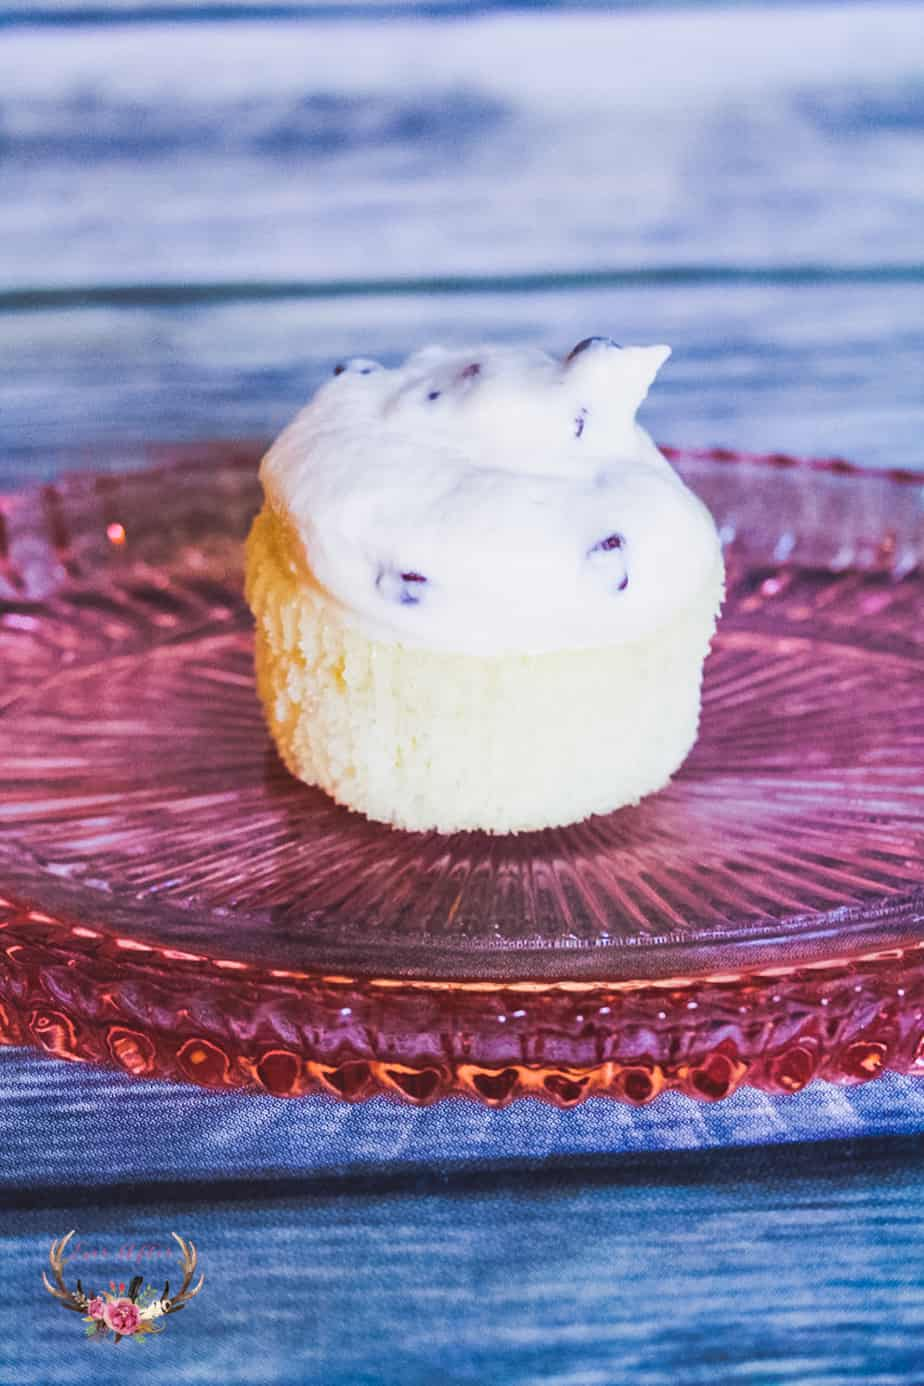 Here is an easy cannoli cupcake recipe that tastes just like the Authentic cannoli filling. Obviously the cannoli filling is the best part of this Italian dessert!